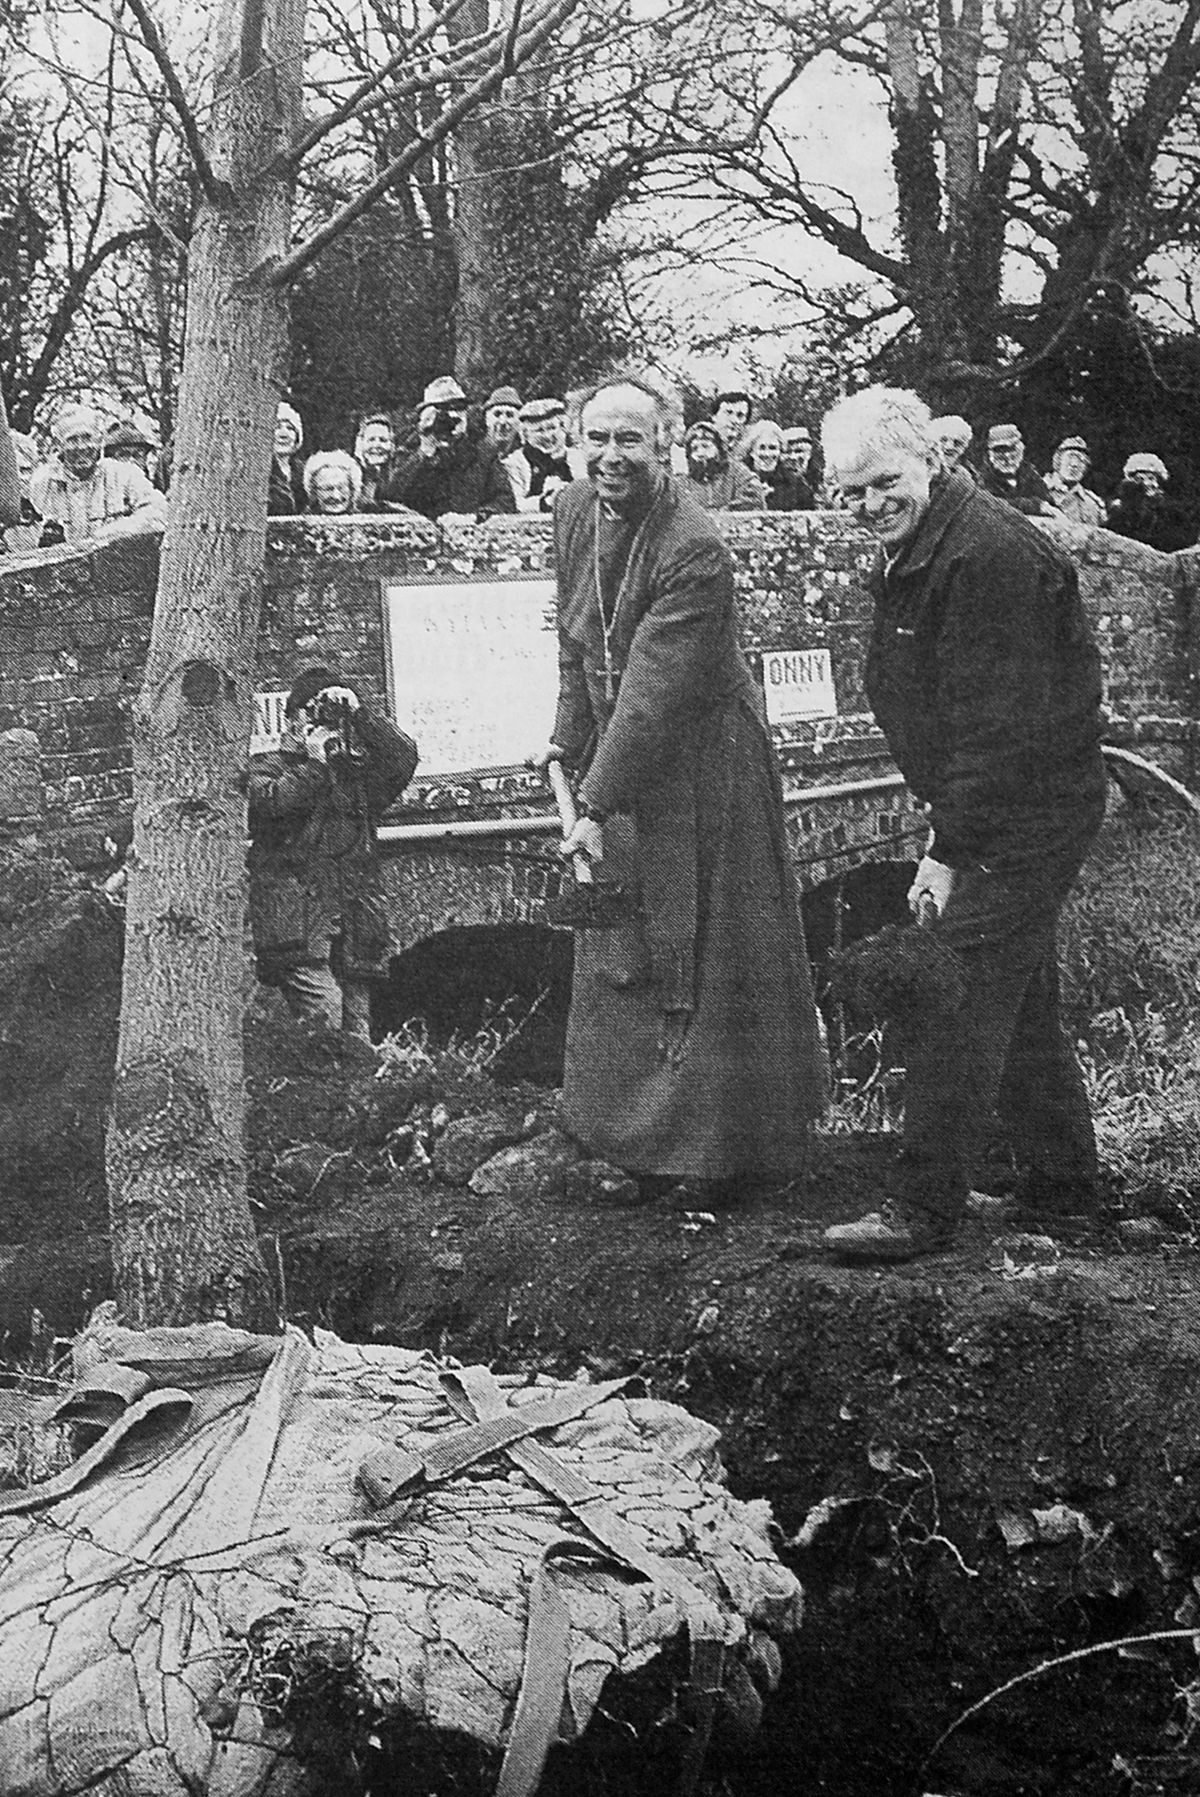 A new black poplar is planted to save the tradition in December 1995. At the ceremony were the Bishop of Ludlow the Right Rev John Saxbee and Roy Lancaster, the television gardener.